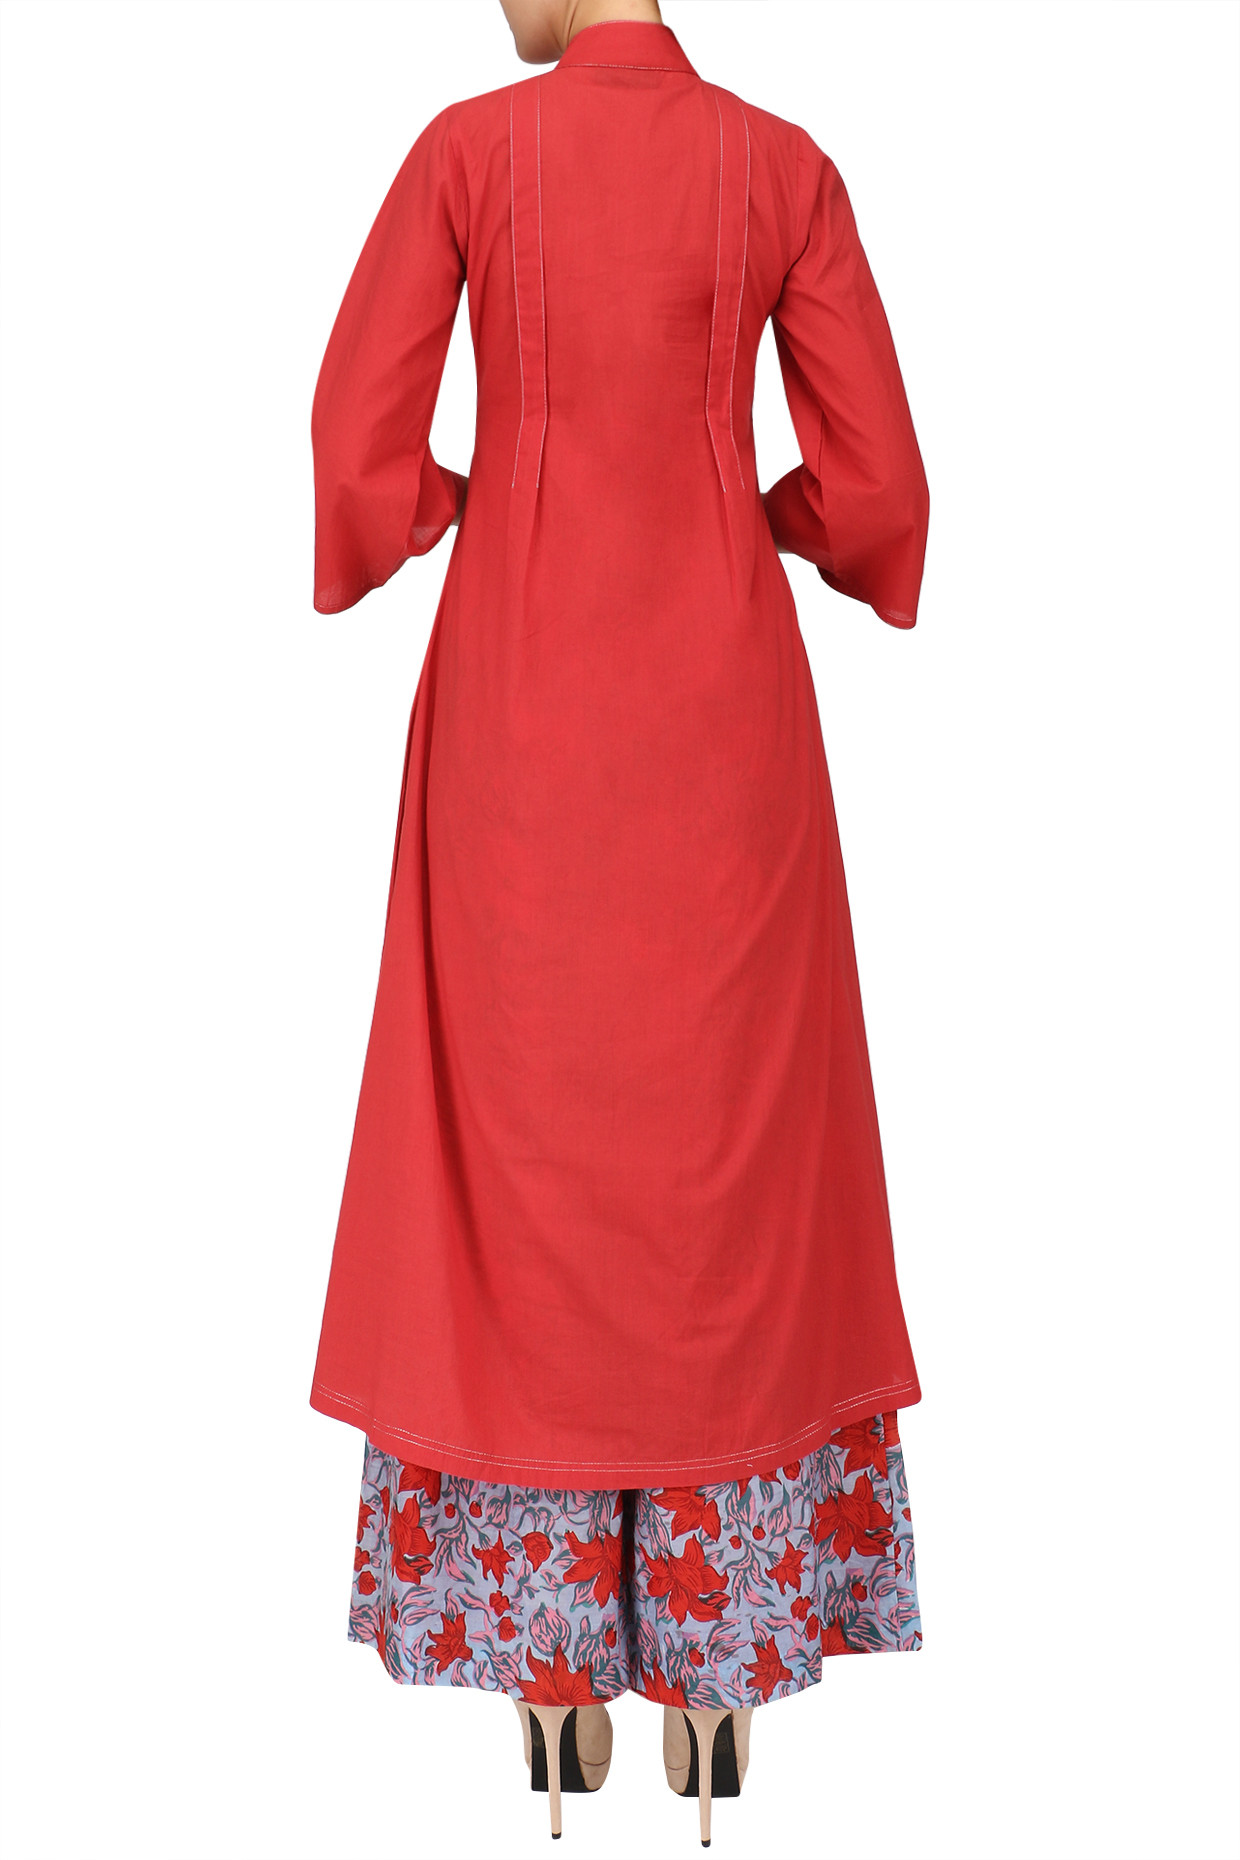 Red and Blue Floral Print Embroidered Flared Kurta Set by Surendri